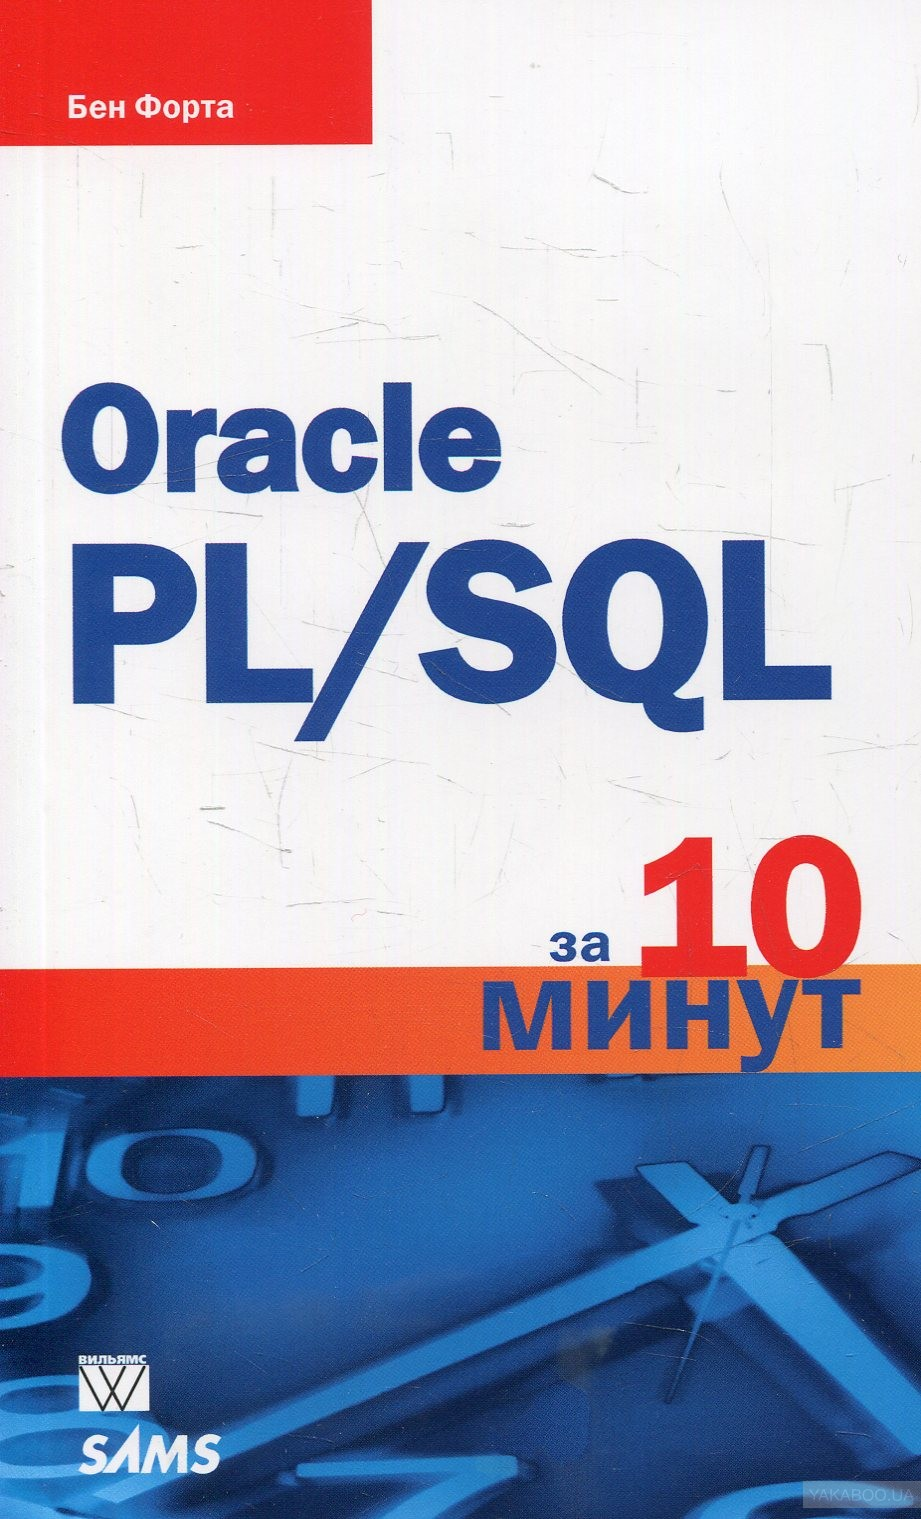 Купить Oracle PL/SQL за 10 минут, Вильямс, Бен Форта, 978-5-8459-2082-9